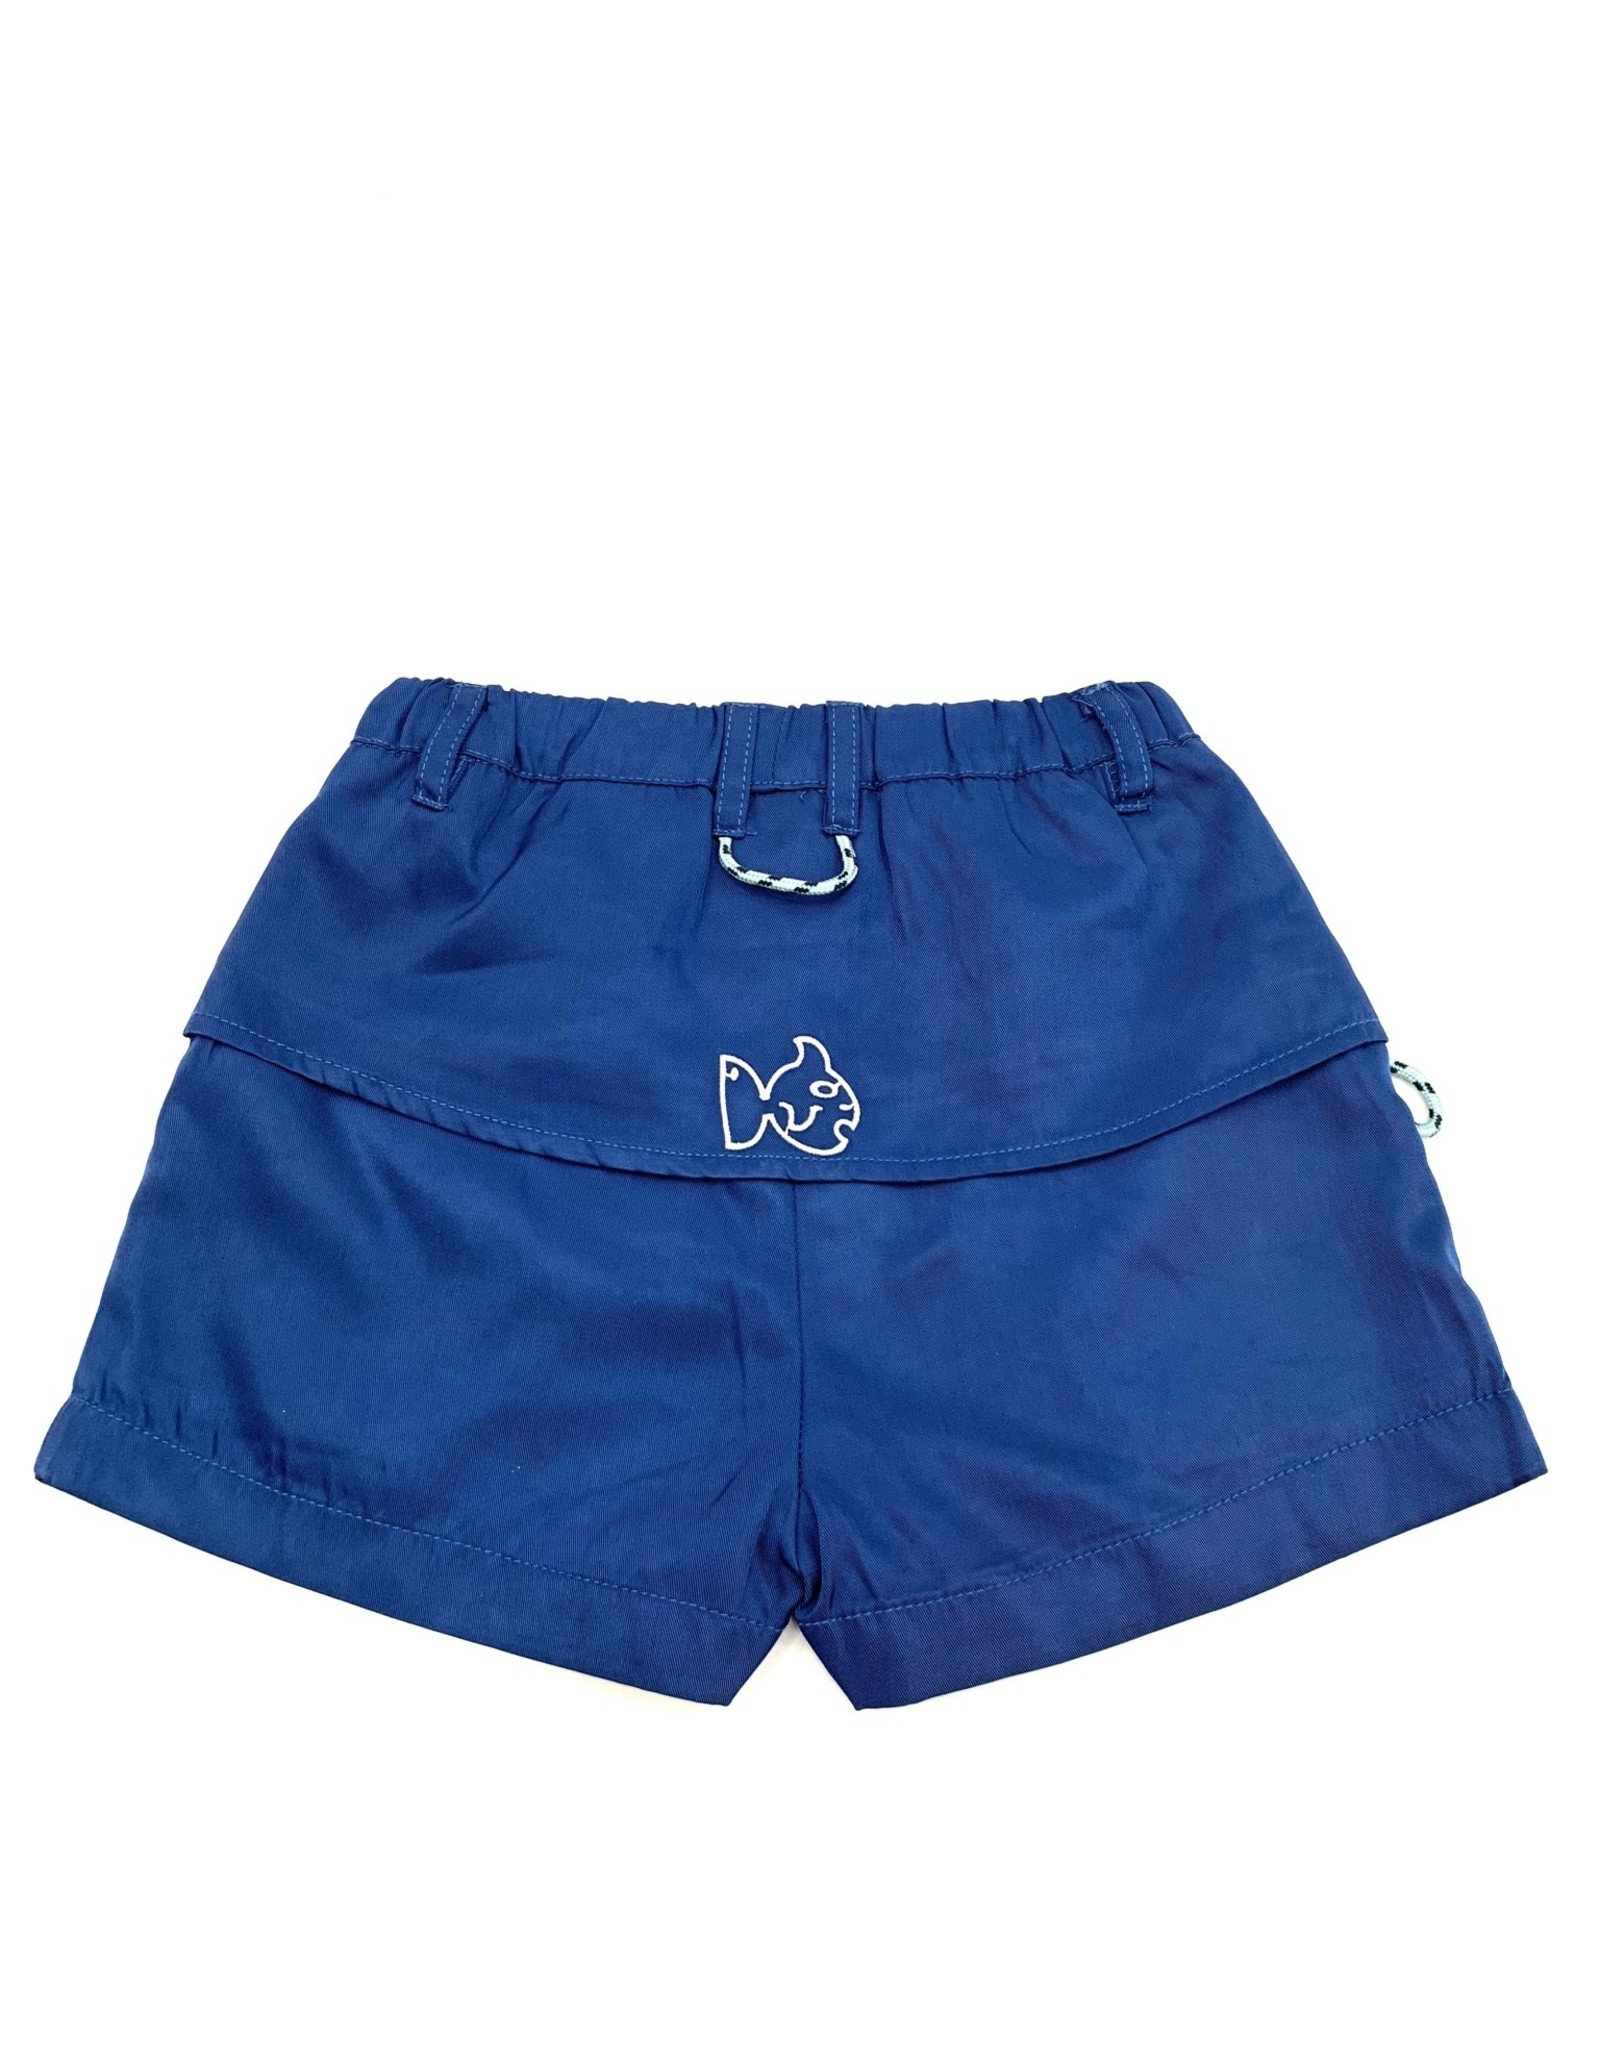 Prodoh Navy Angler Fishing Short